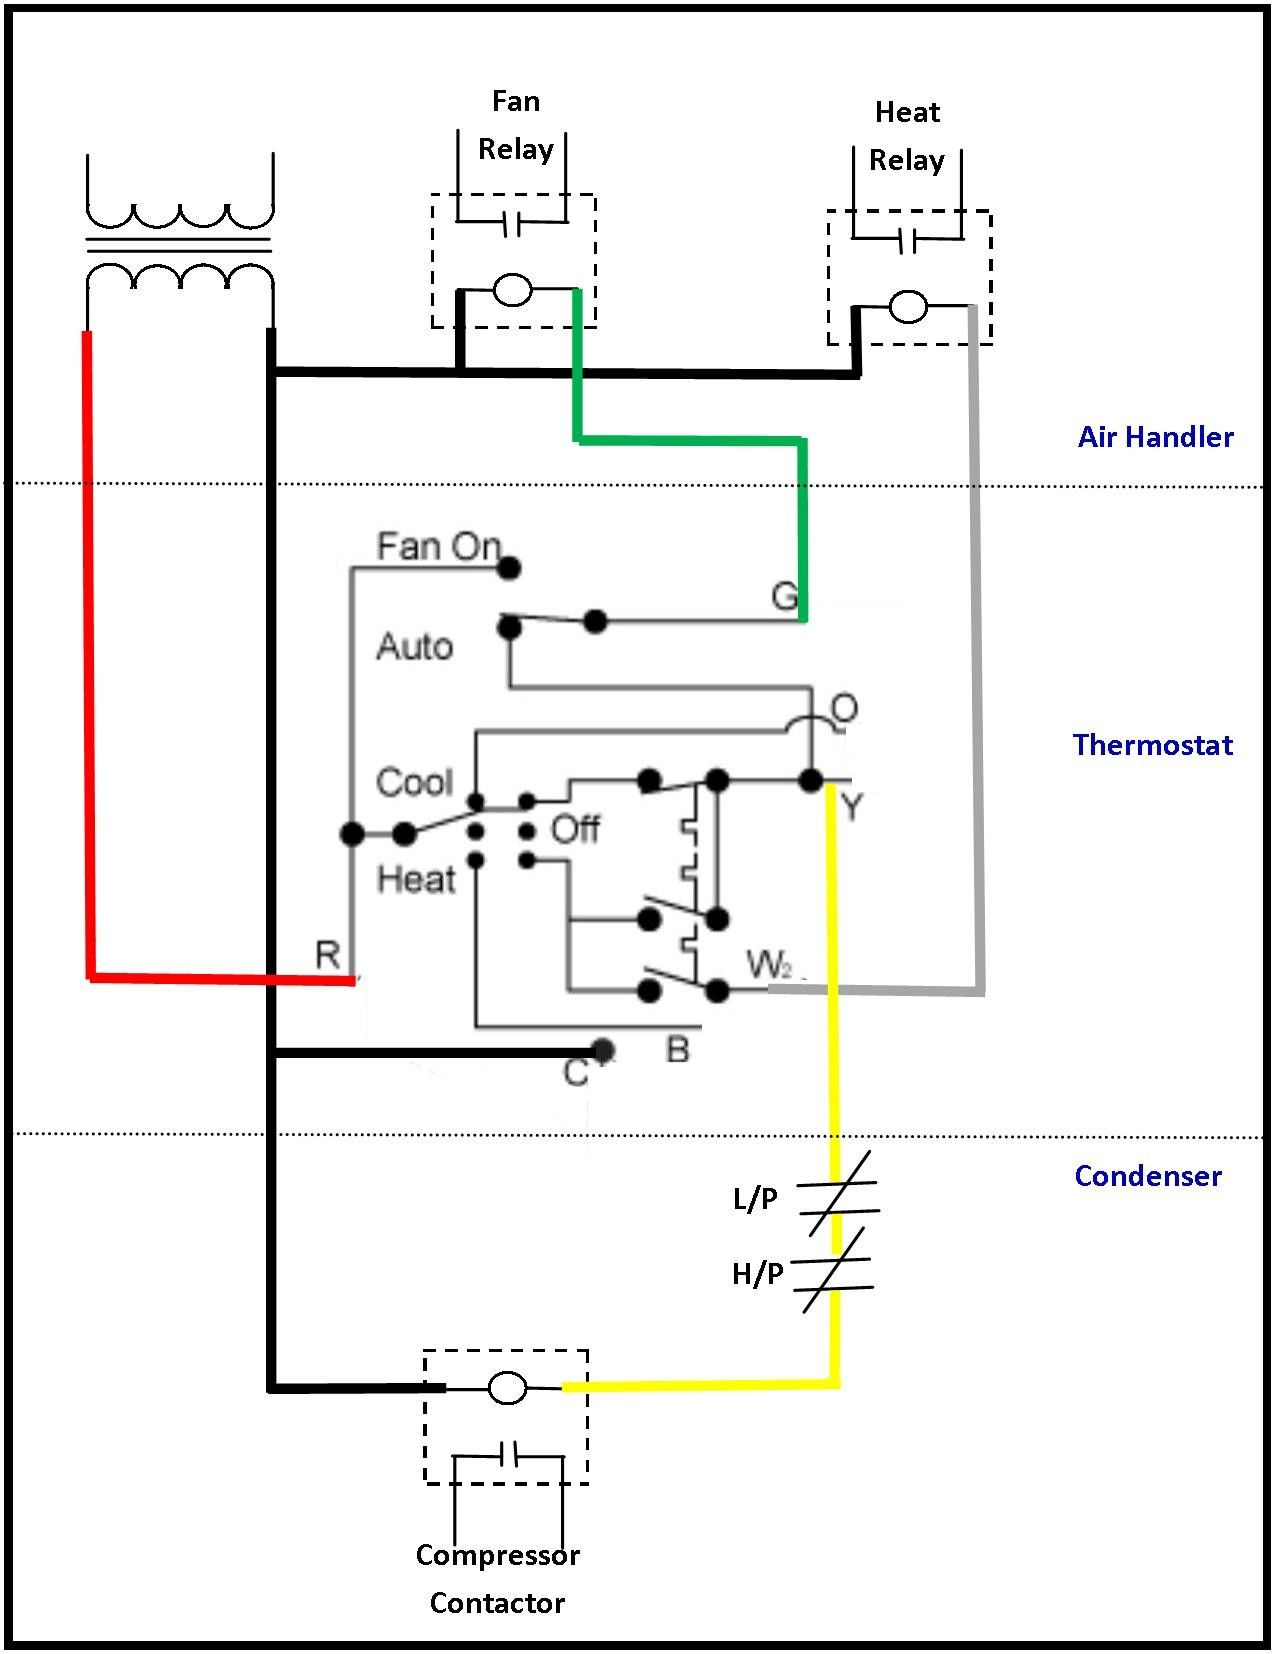 Unique Fan Relay Wiring Diagram Hvac #diagram #diagramsample  #diagramtemplate #wiringdiagram #diagramcha… | Thermostat wiring, Electrical  circuit diagram, Ac wiring | Hvac Start Relay Wiring Diagram |  | www.pinterest.ph